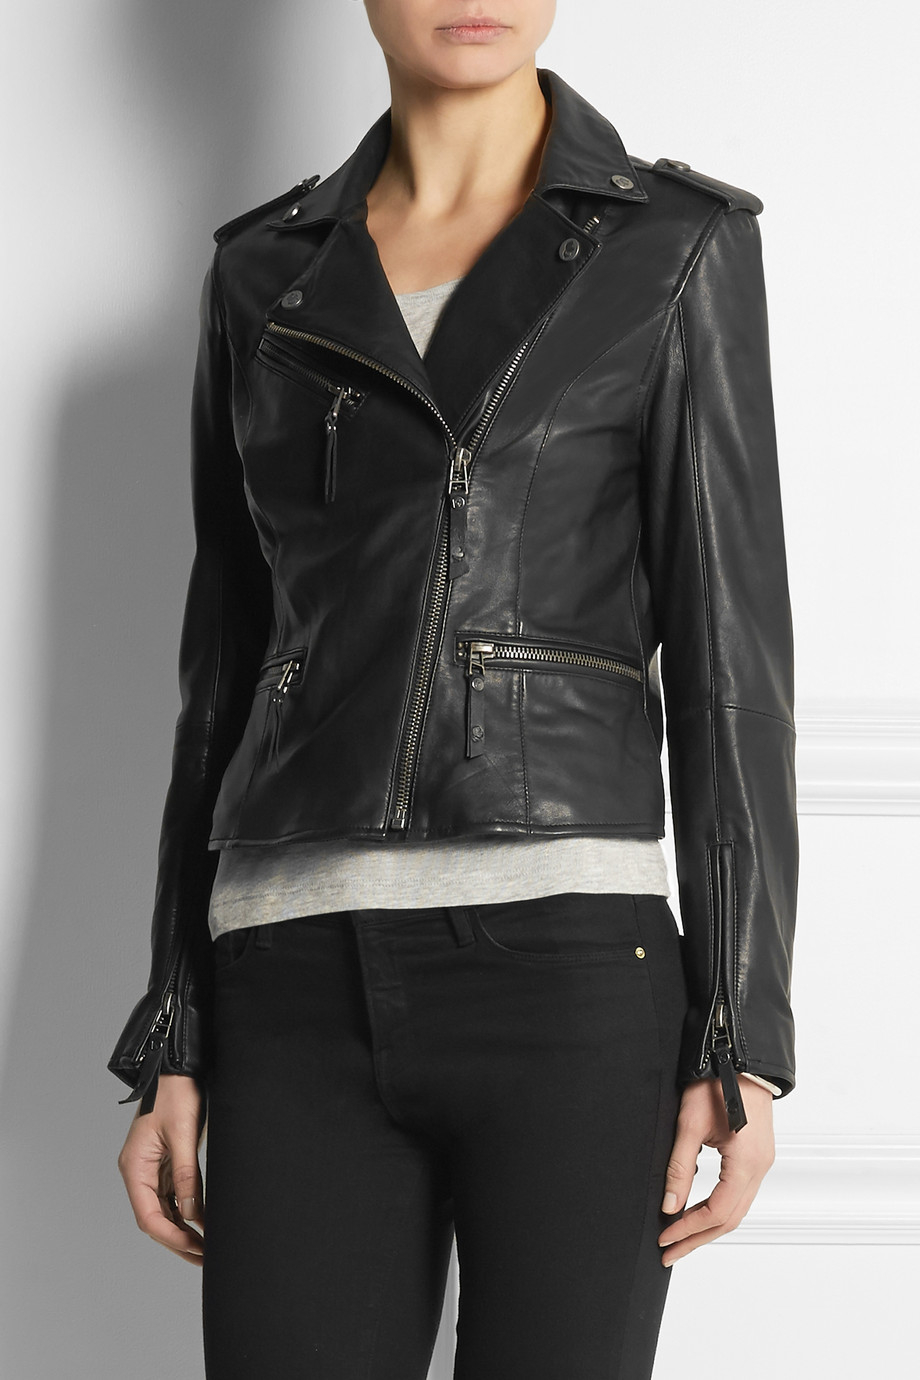 Lagerfeld leather jacket